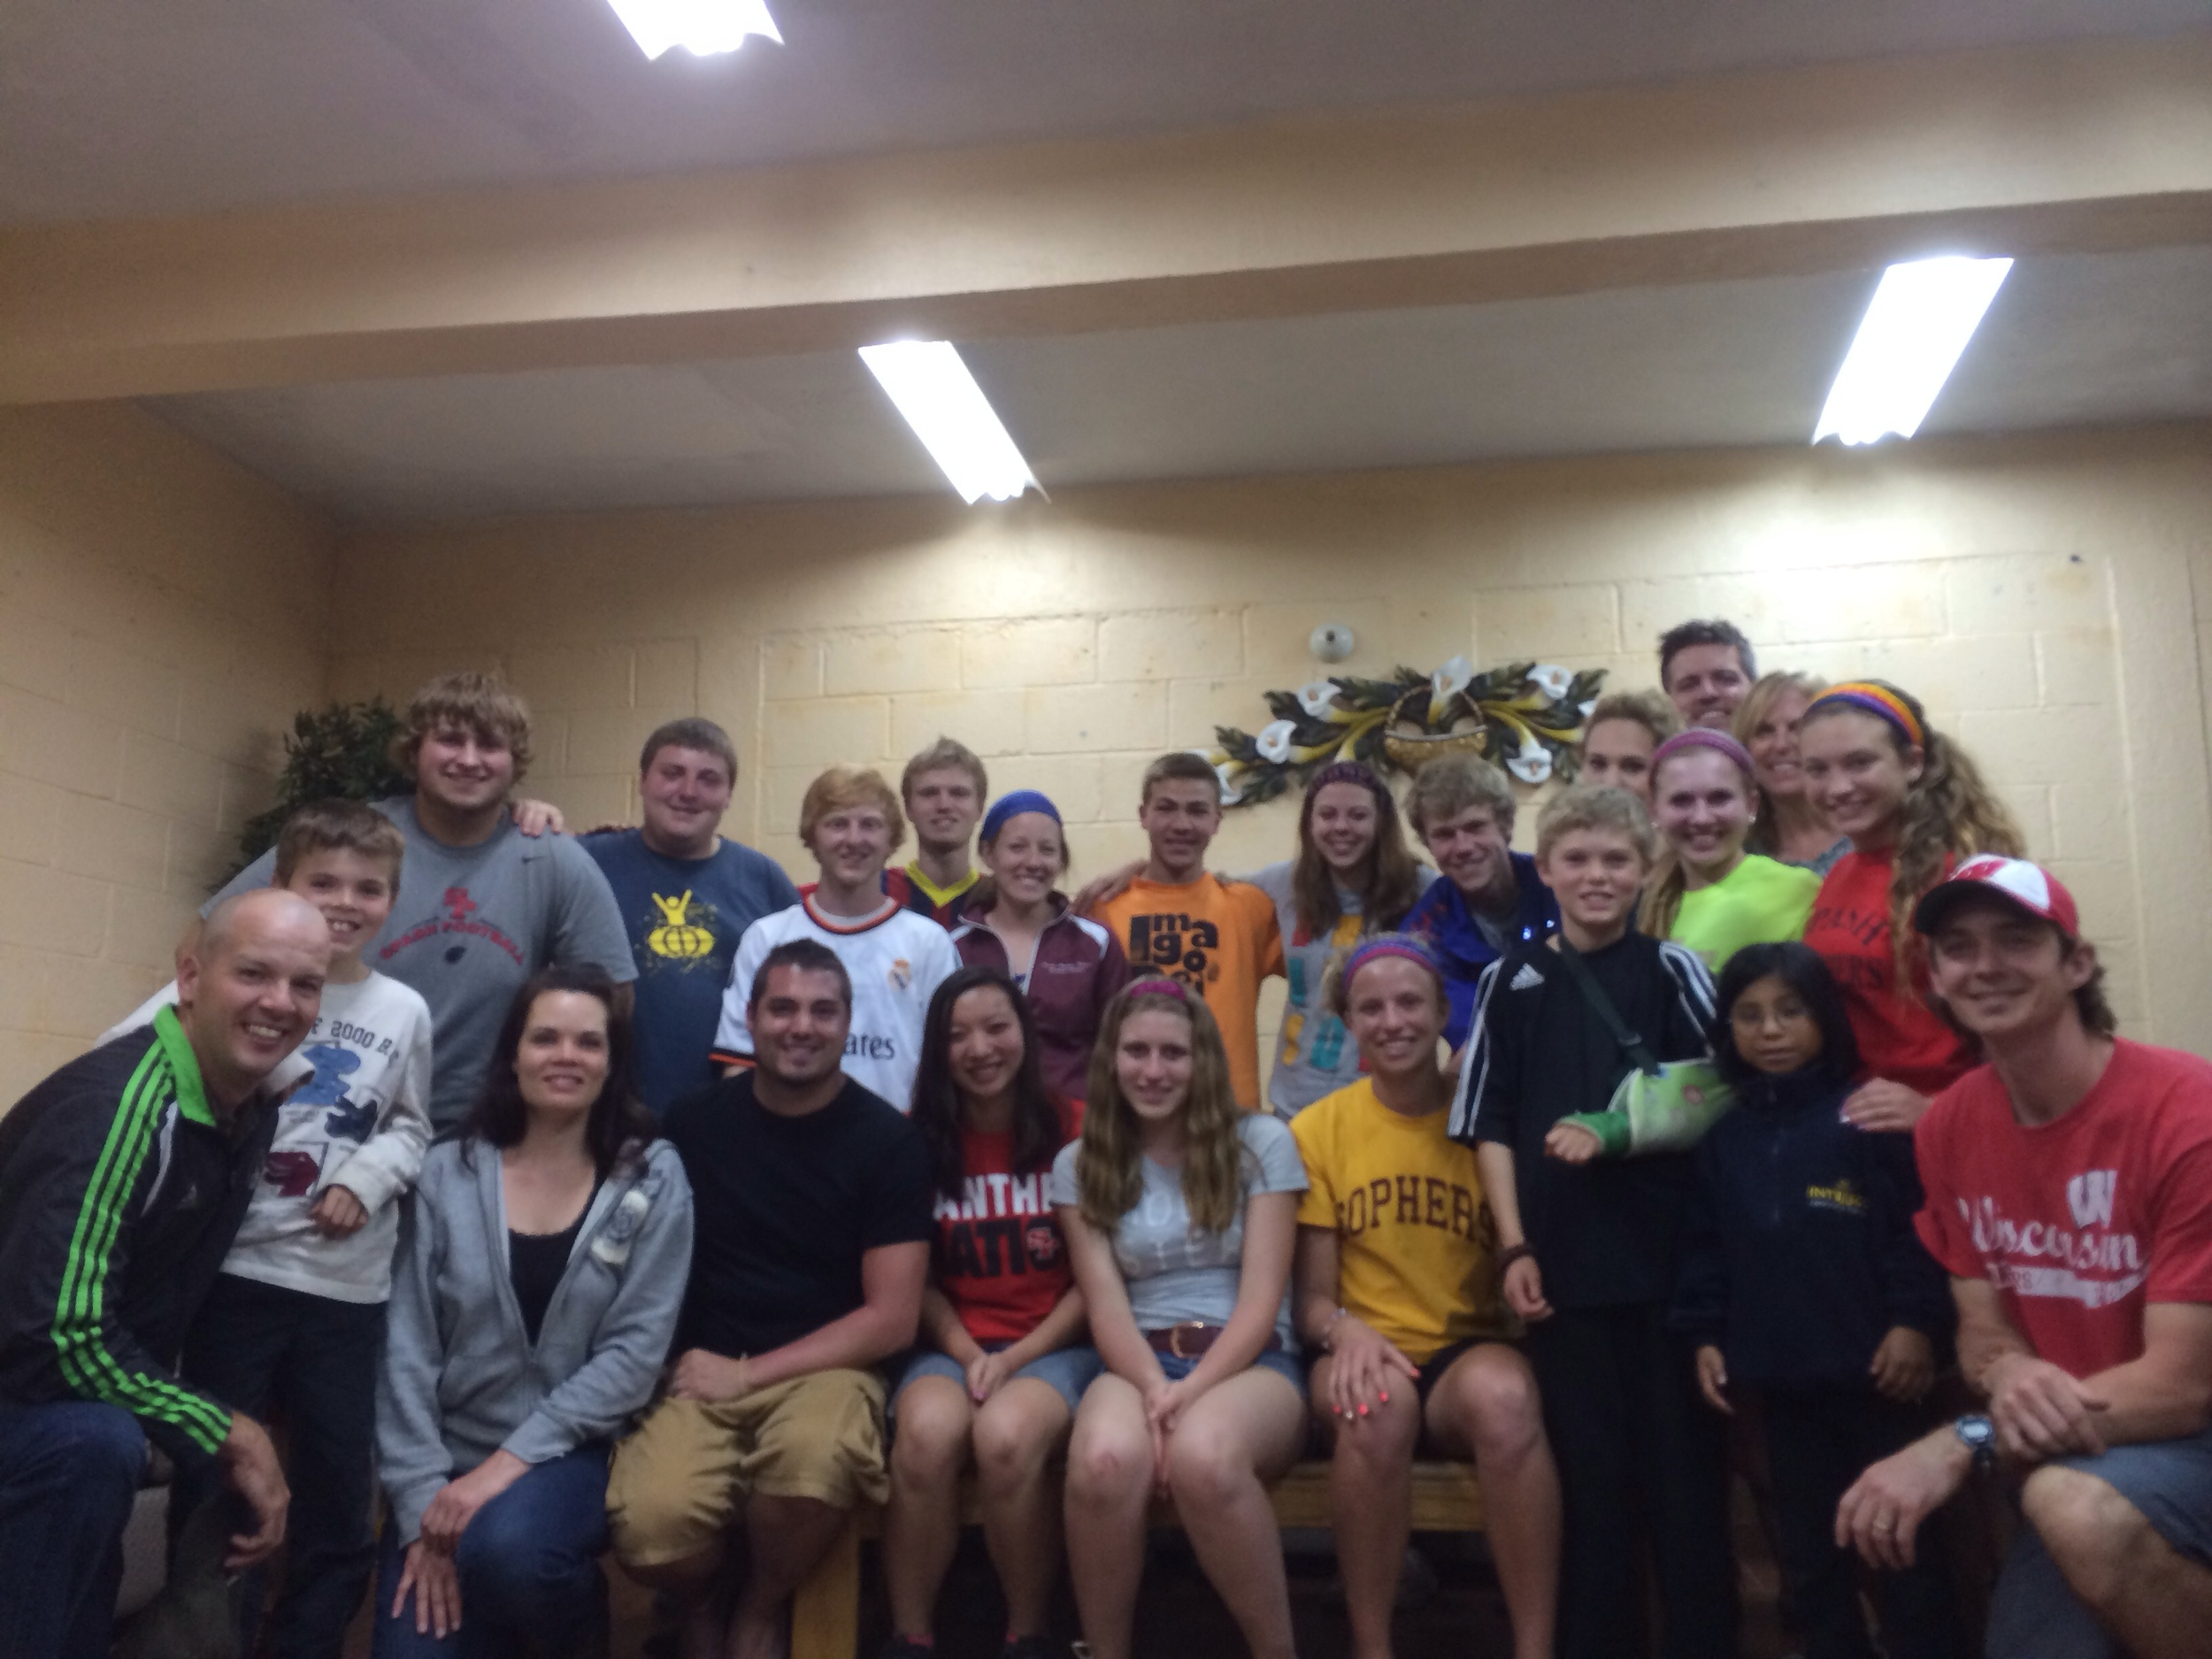 the team with the amazing Kingston's during our last team meeting last night